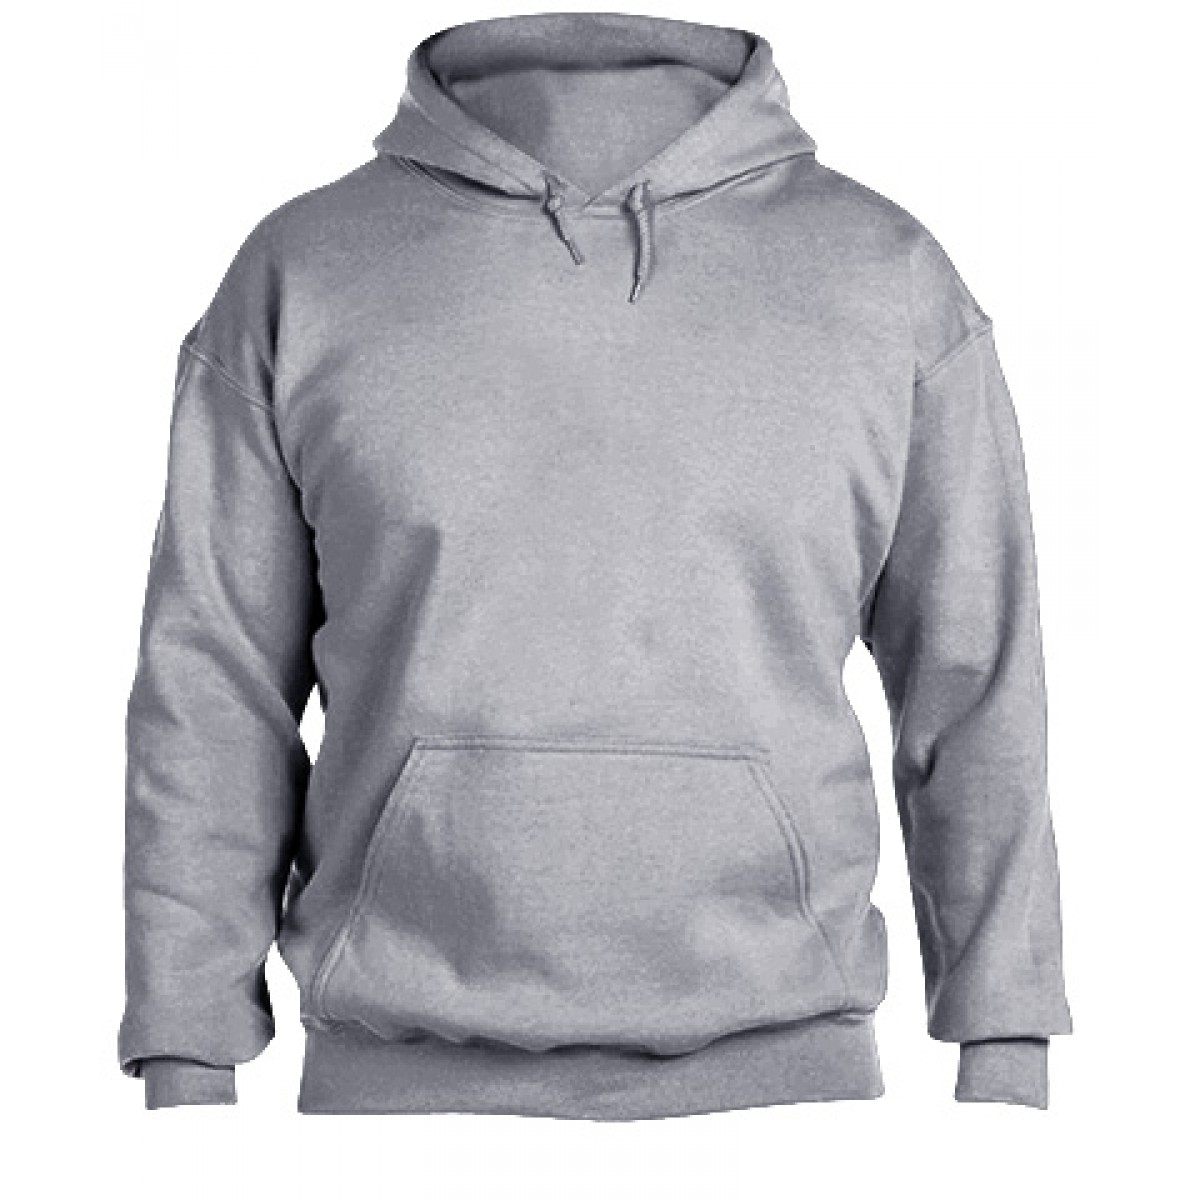 Hooded Sweatshirt 50/50 Heavy Blend -Ash Gray-M